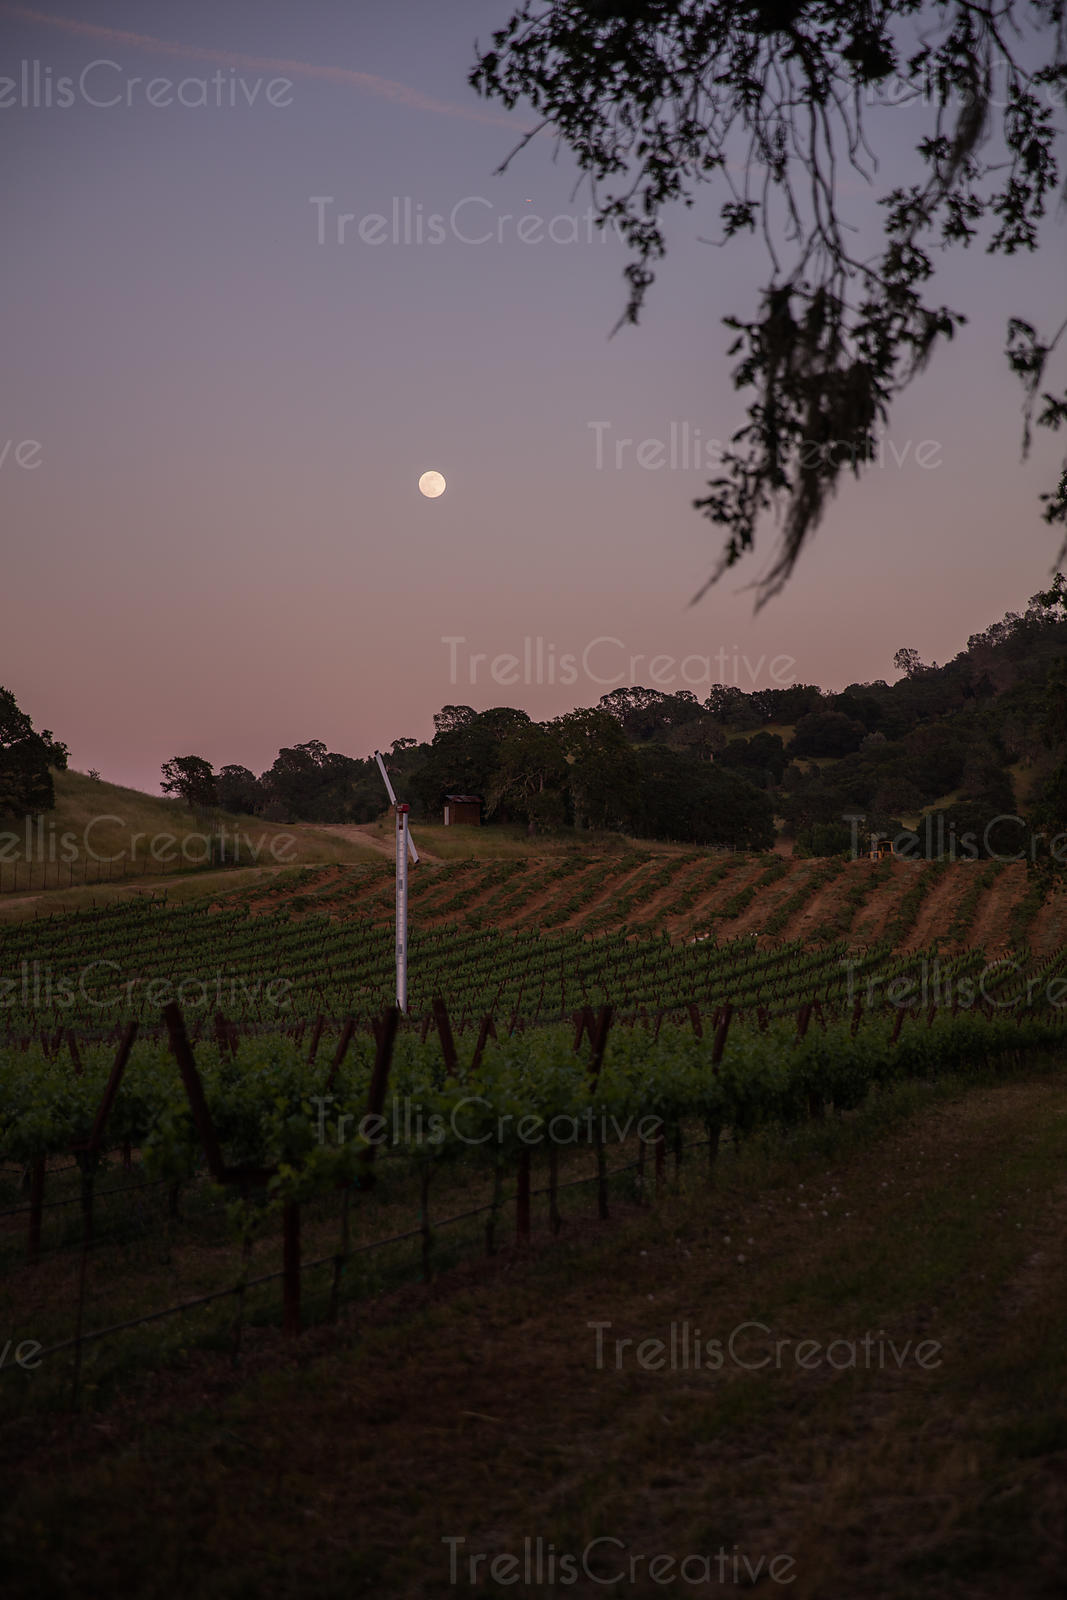 Vines & Vineyard Landscapes